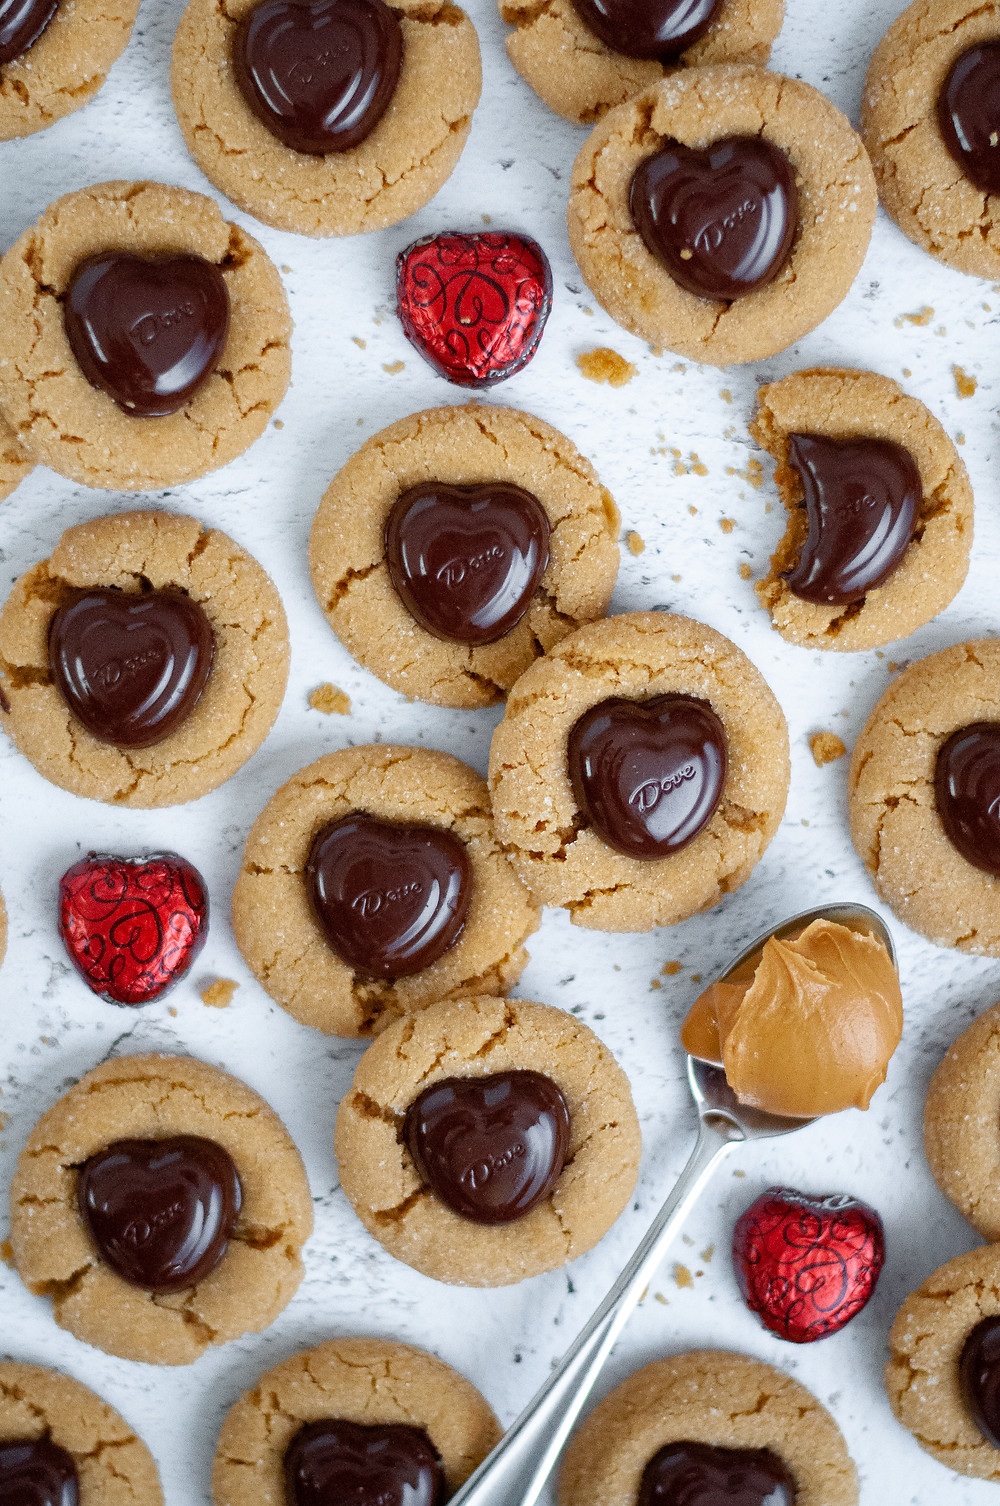 Top down view of these peanut butter blossom cookies with cookie crumbs, a spoonful of peanut butter, and extra heart-shaped chocolates